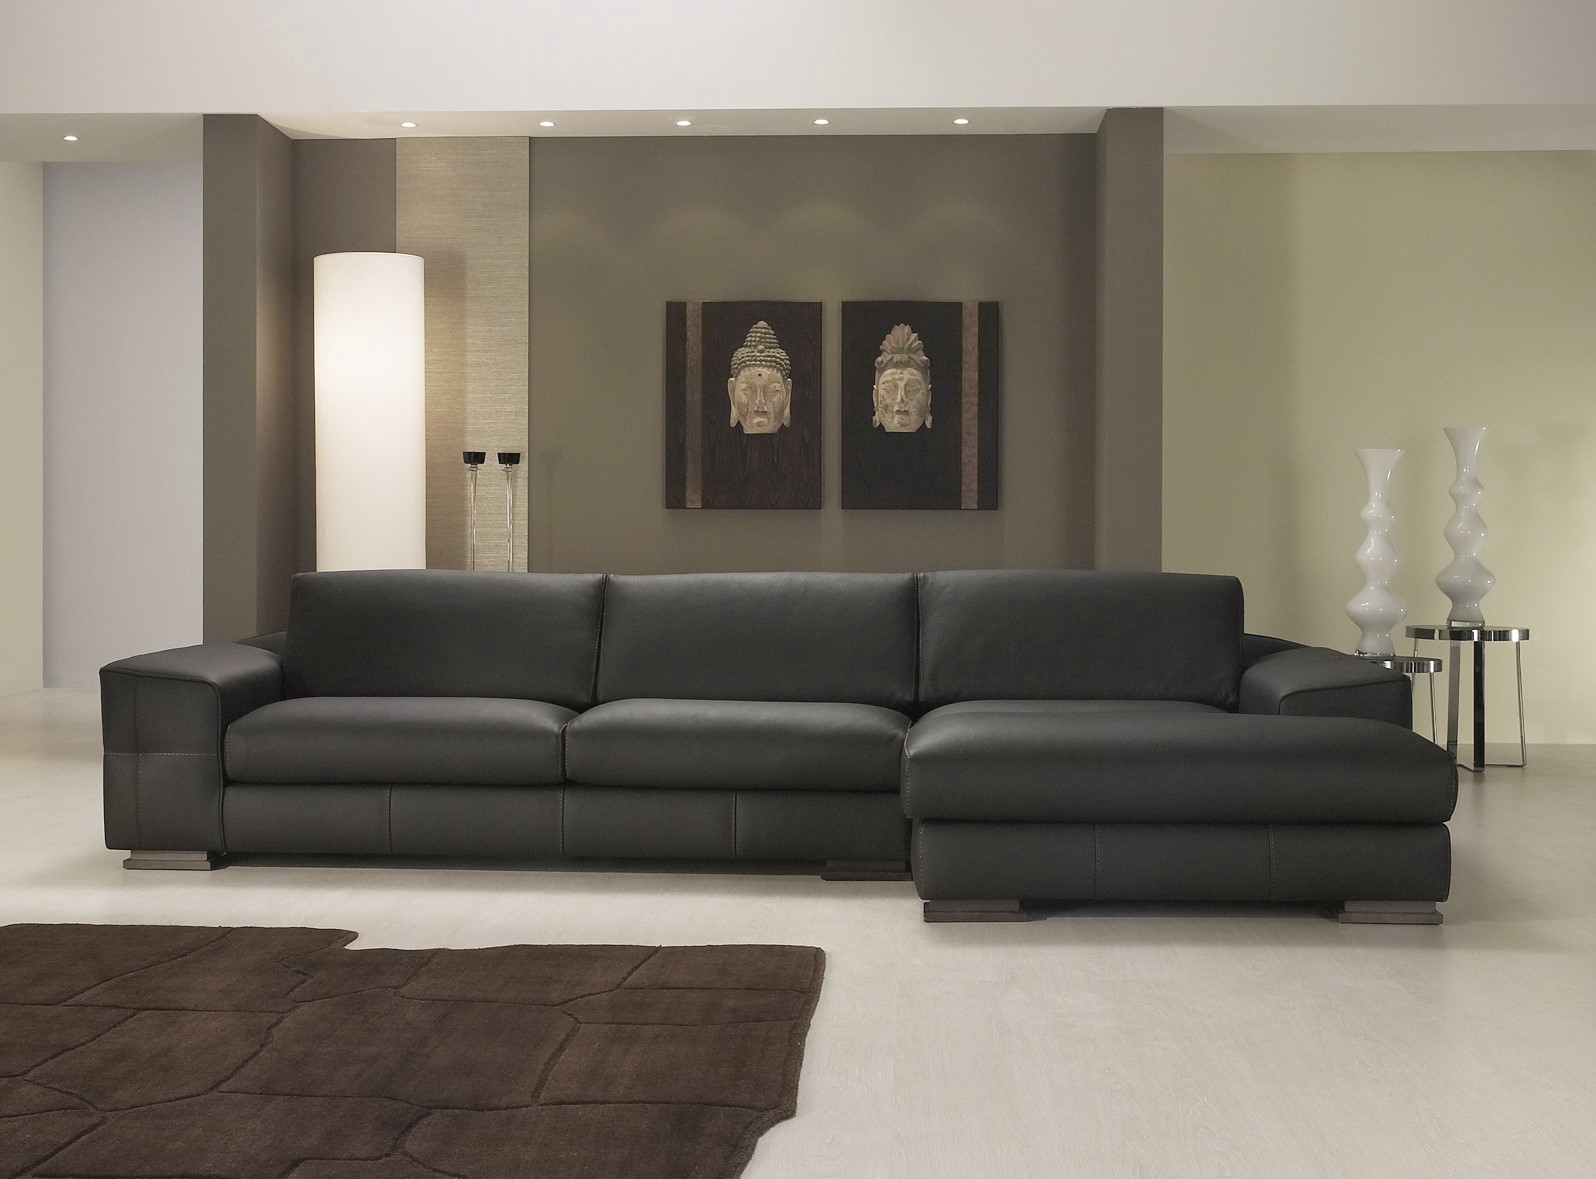 L Shape Sofa Set Kirti Nagar 5 Amazing Couch Styles To Decorate Your Home With Idus